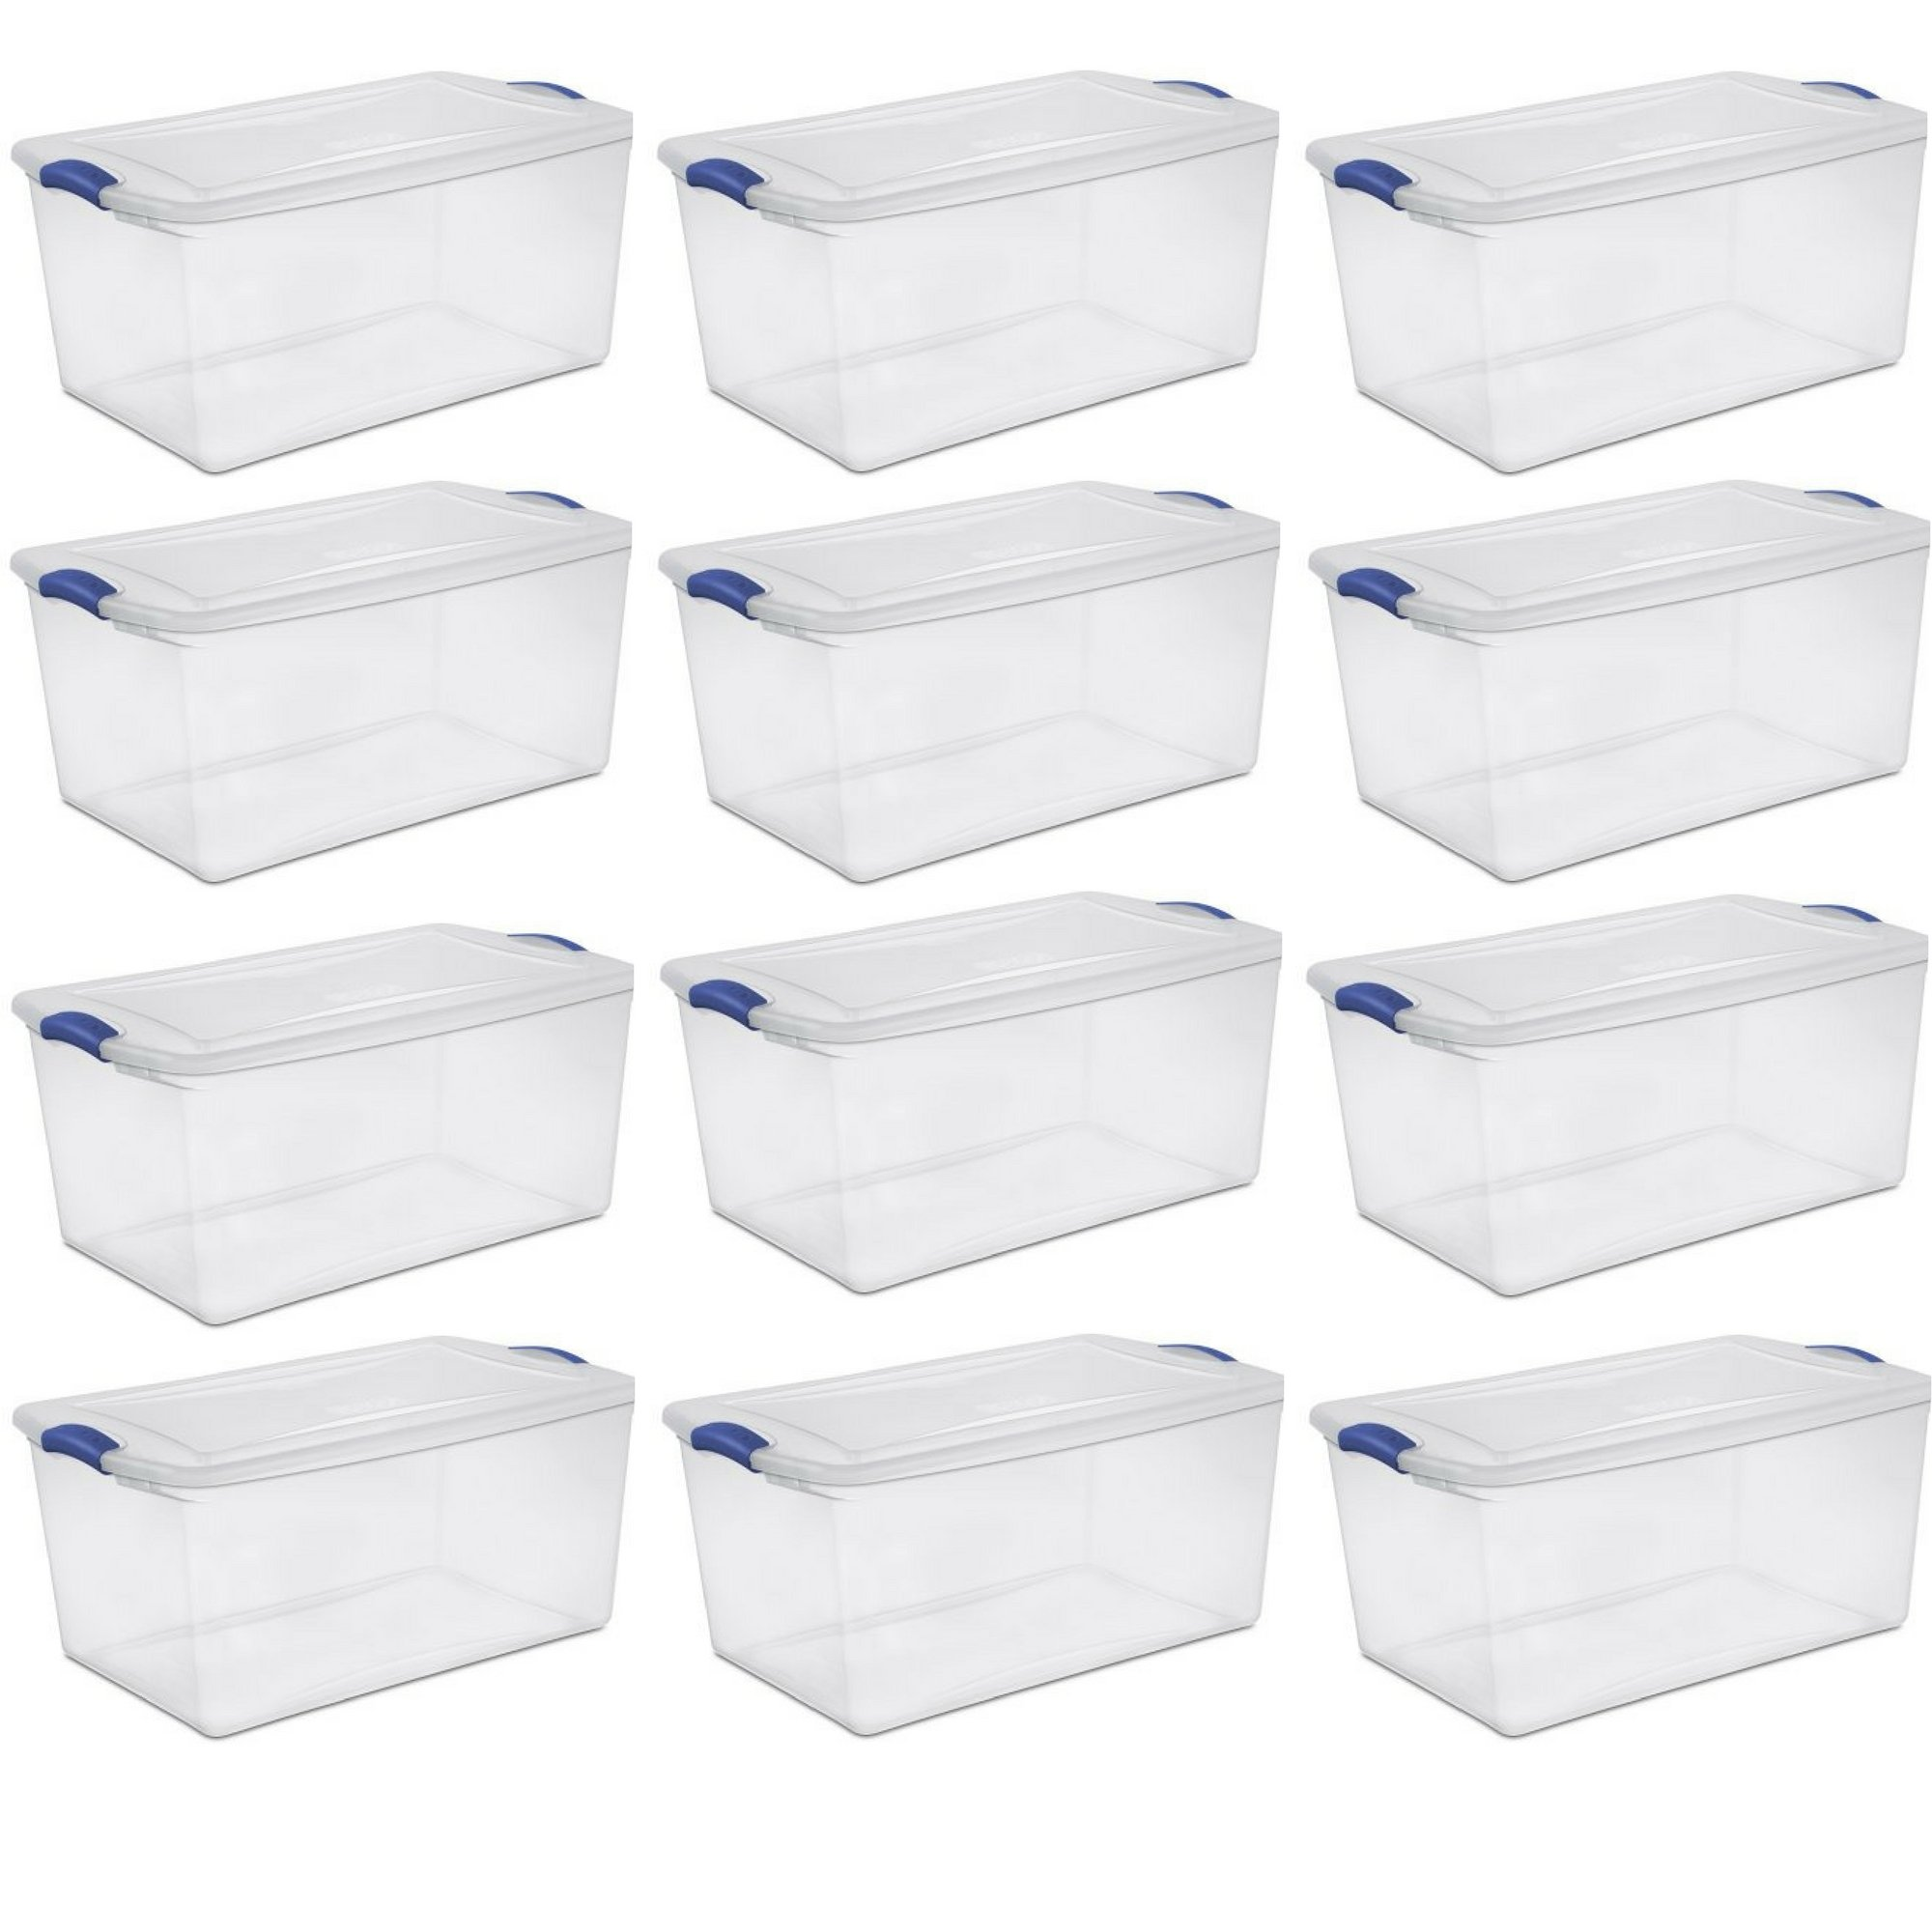 Sterilite 66 Qt./62 L Latch Box, Stadium Blue - 12 Pack